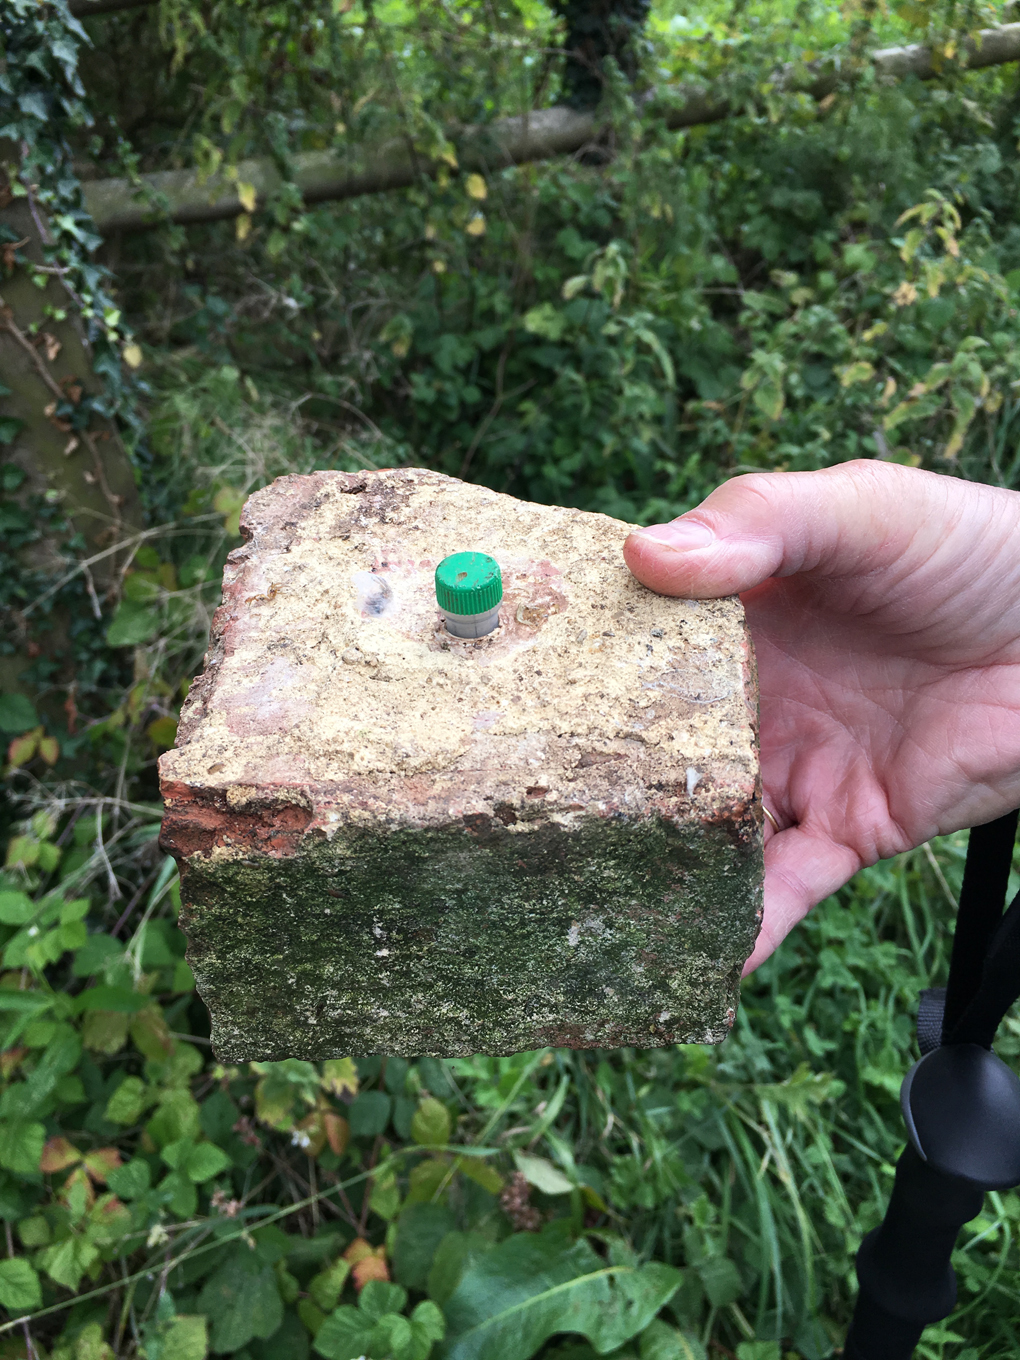 Our 500th Geocache Find